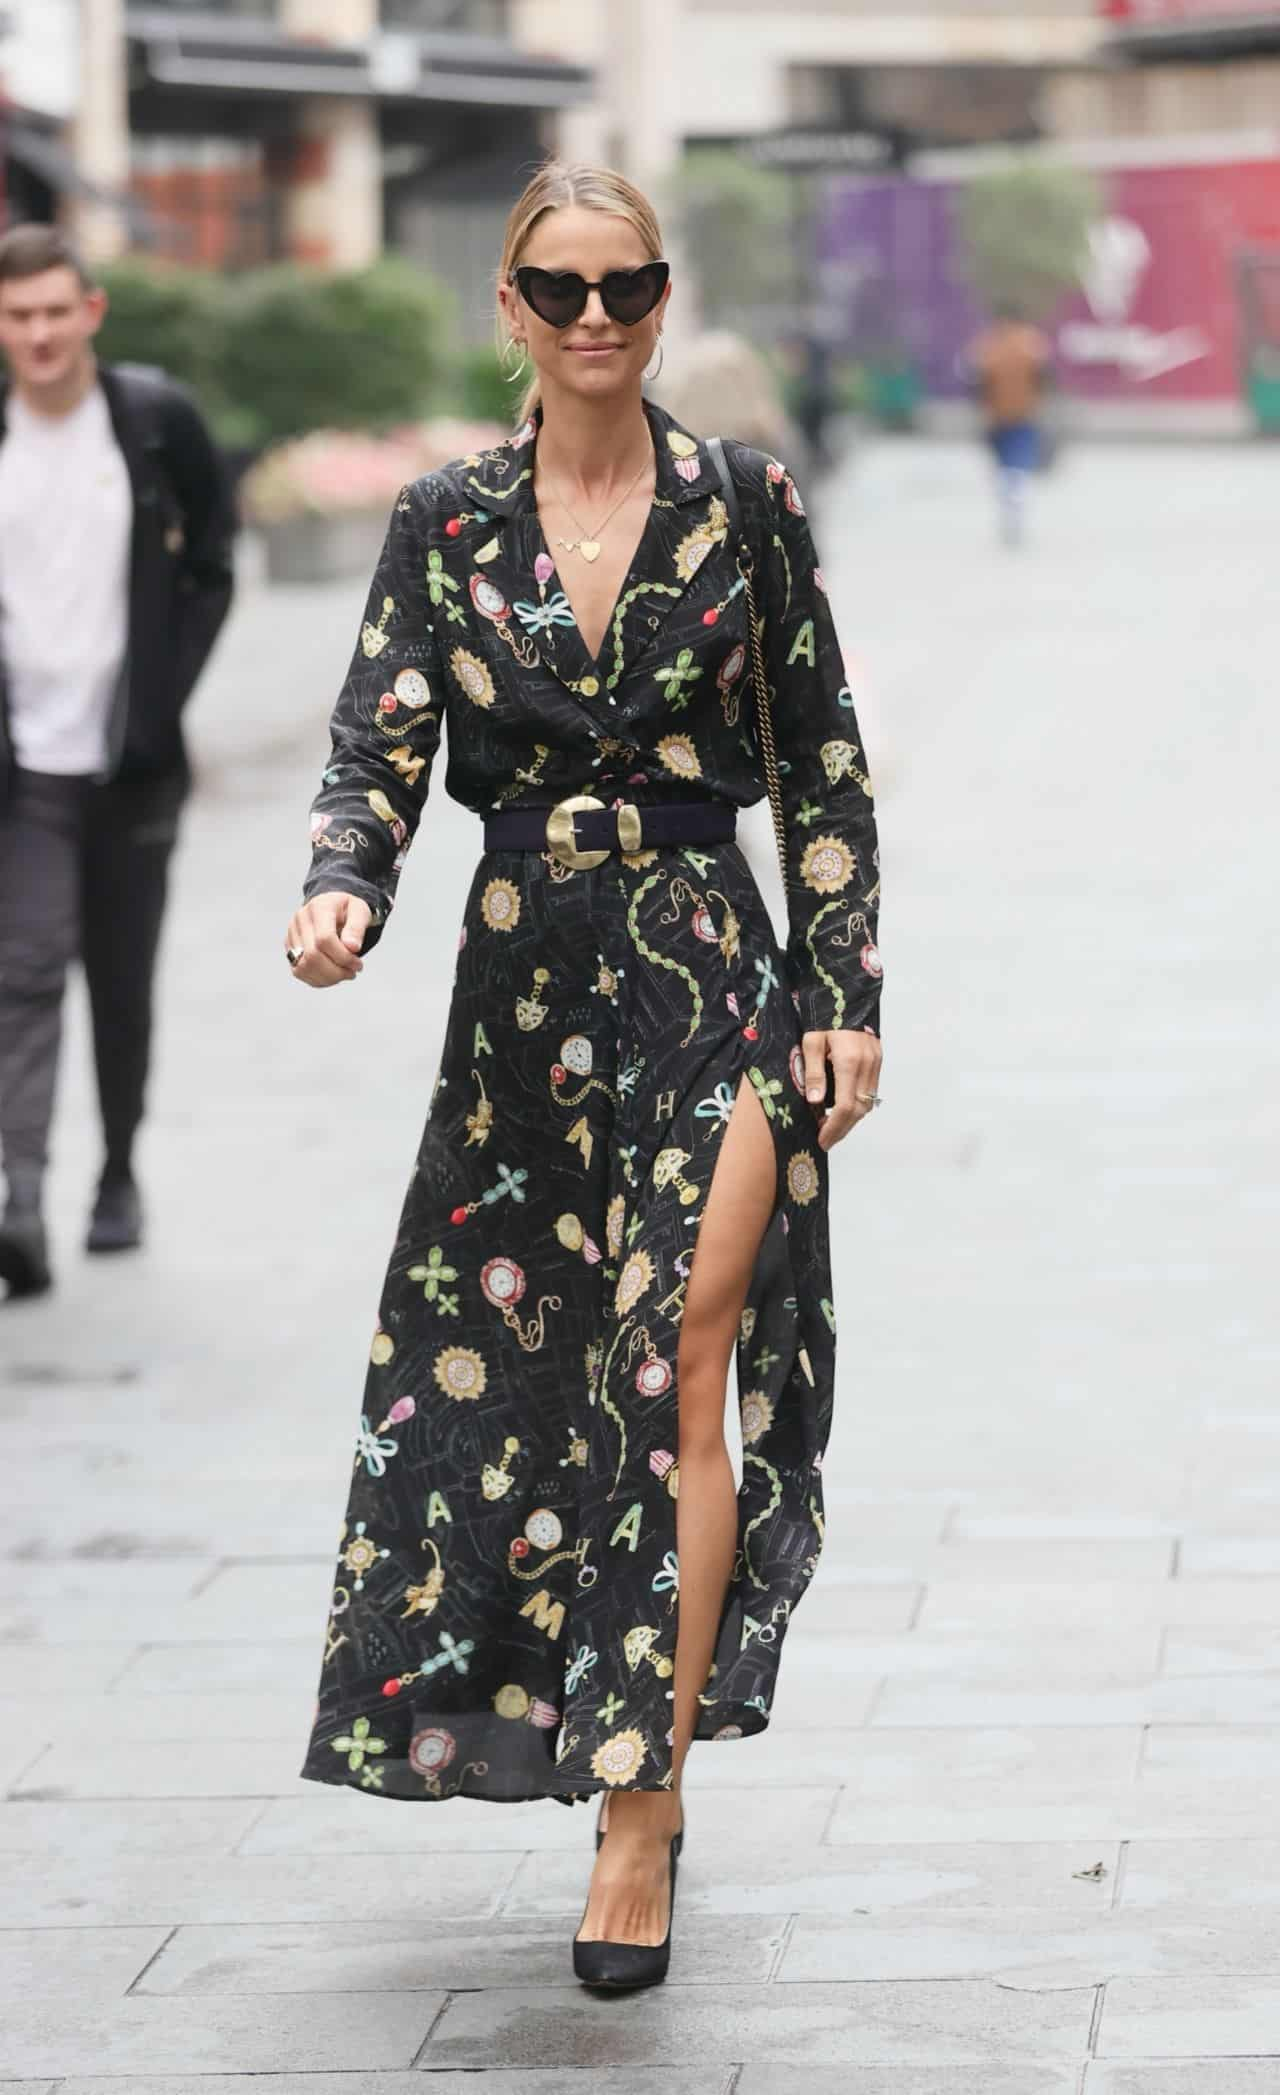 Vogue Williams in a Trendy High Slit Dress in London